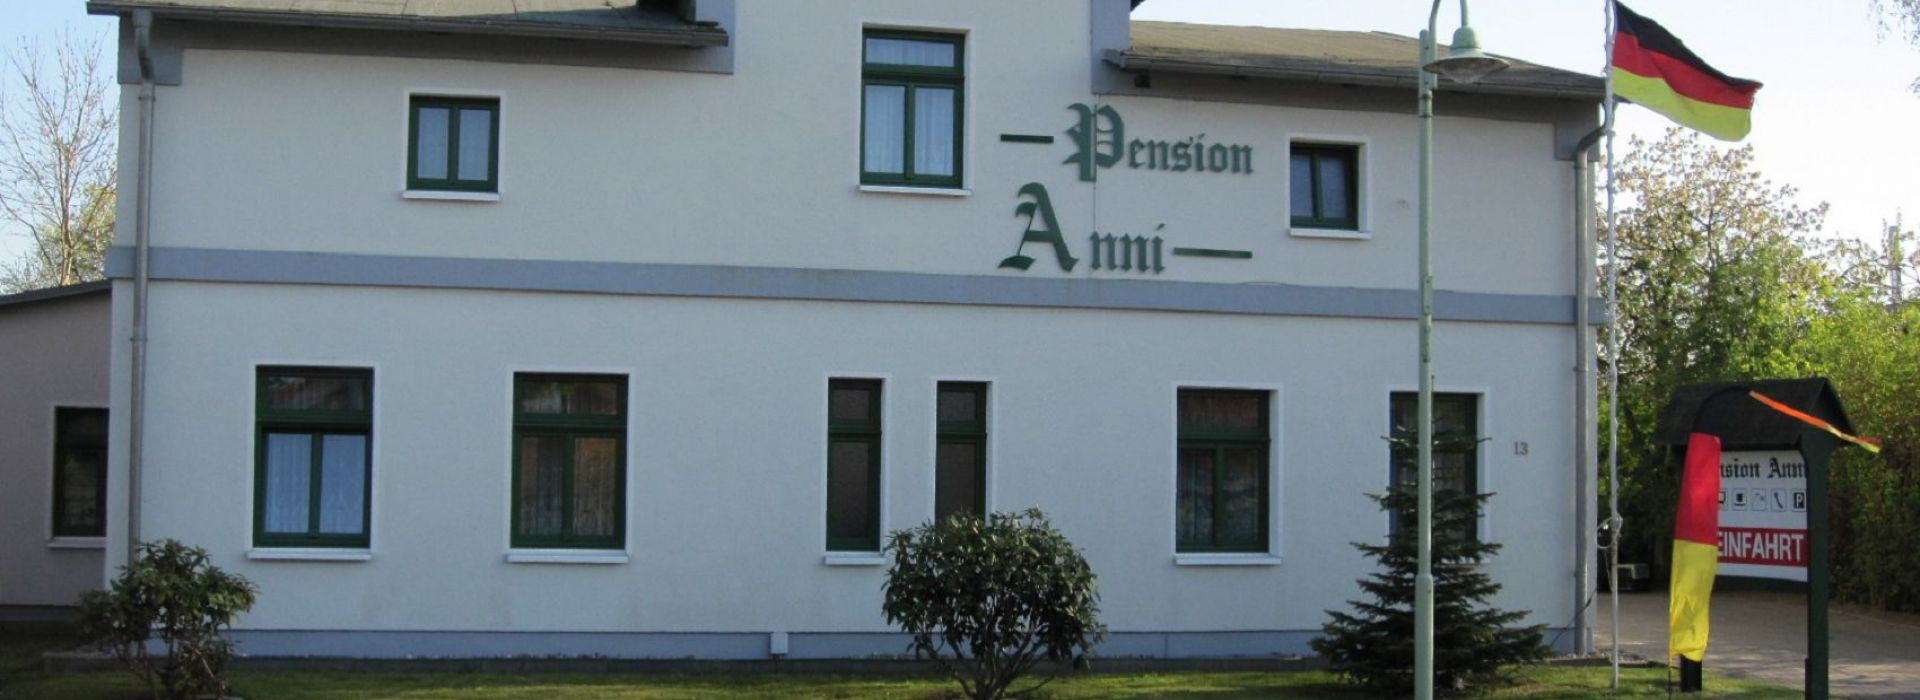 Pension Anni in Sanitz